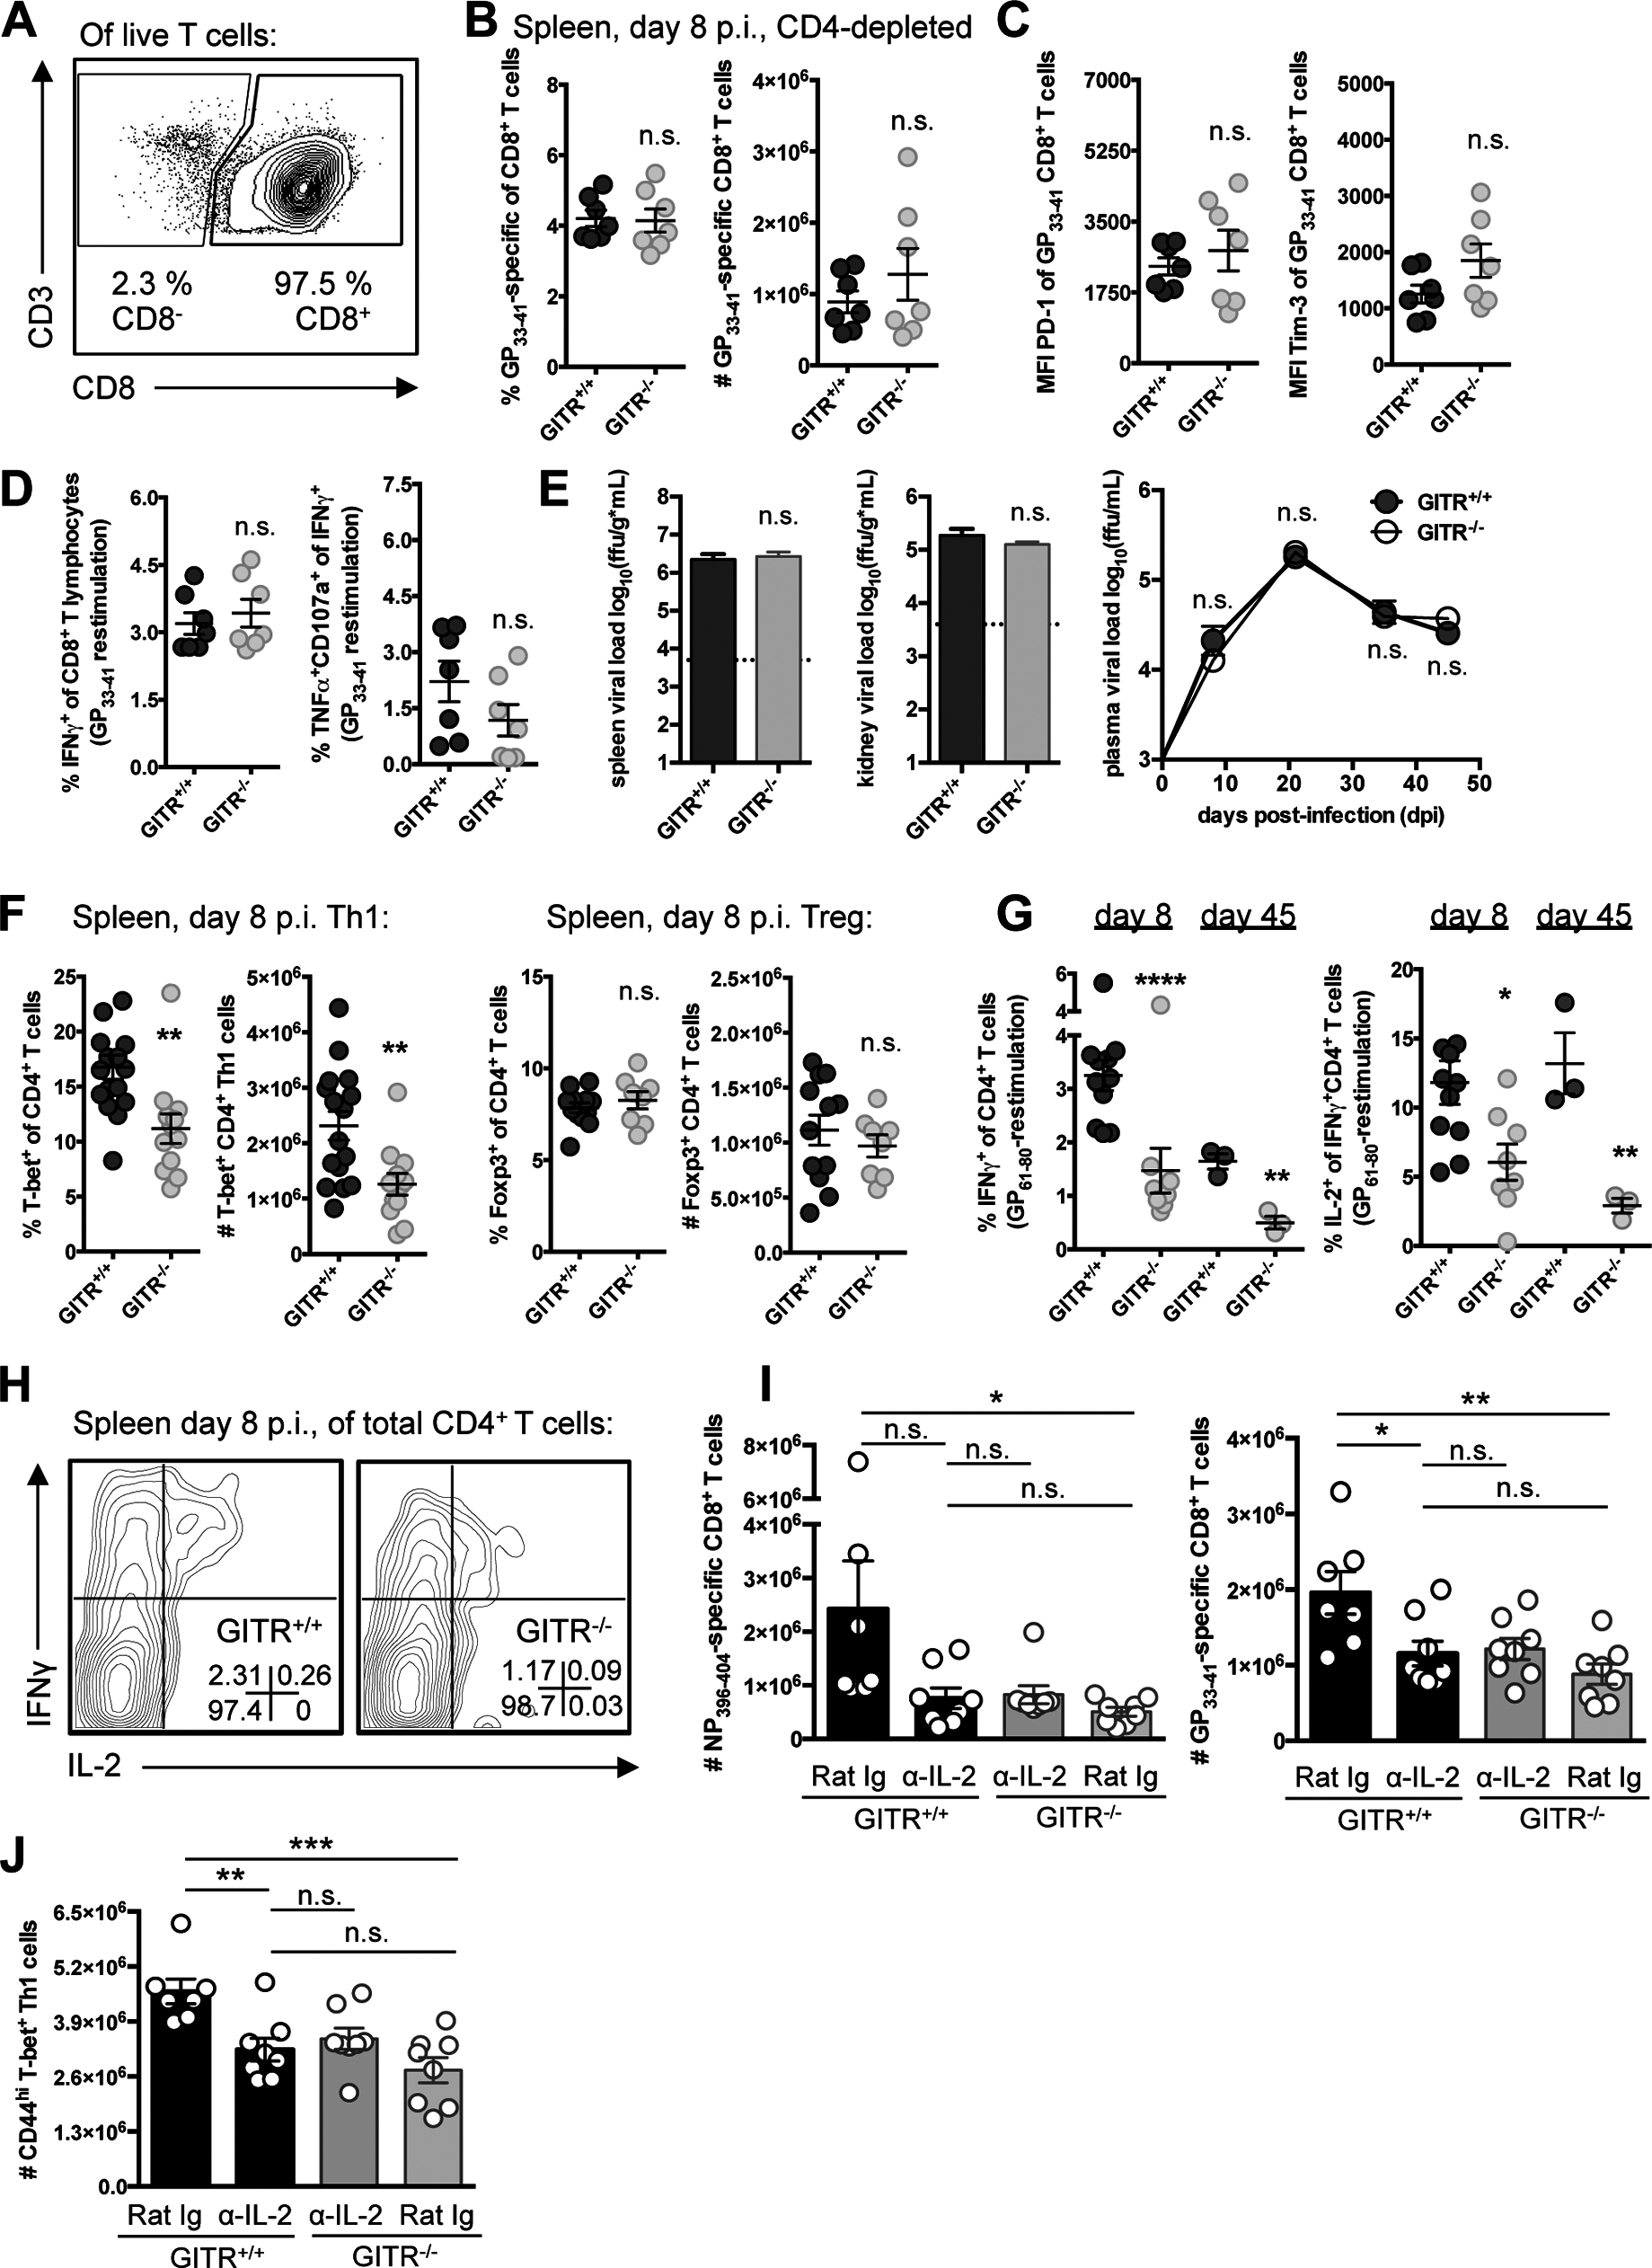 A CD4 T cell population underscores the defective immunity in GITR<sup>-/-</sup> mice, and GITR<sup>-/-</sup> mice have fewer IL-2-producing Th1 cells.